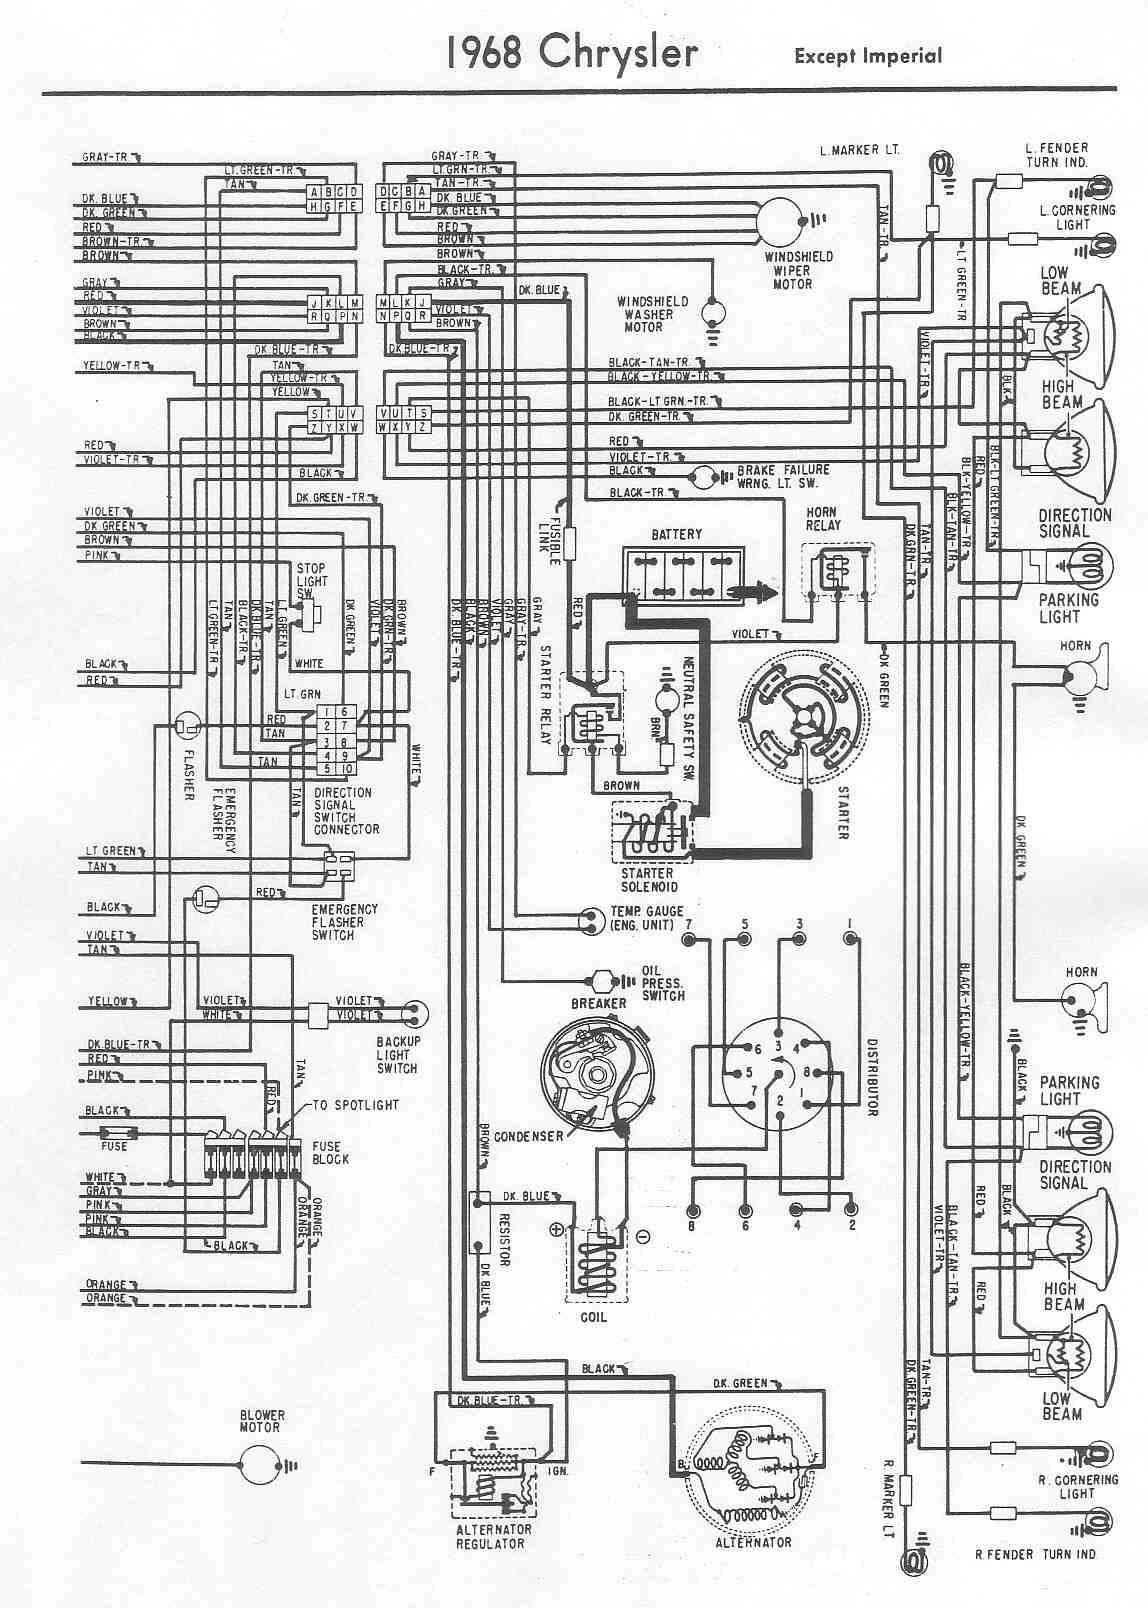 1968 Chevy Steering Column Wiring Diagram 89 Chevrolet Impala Schematic Diagrams On